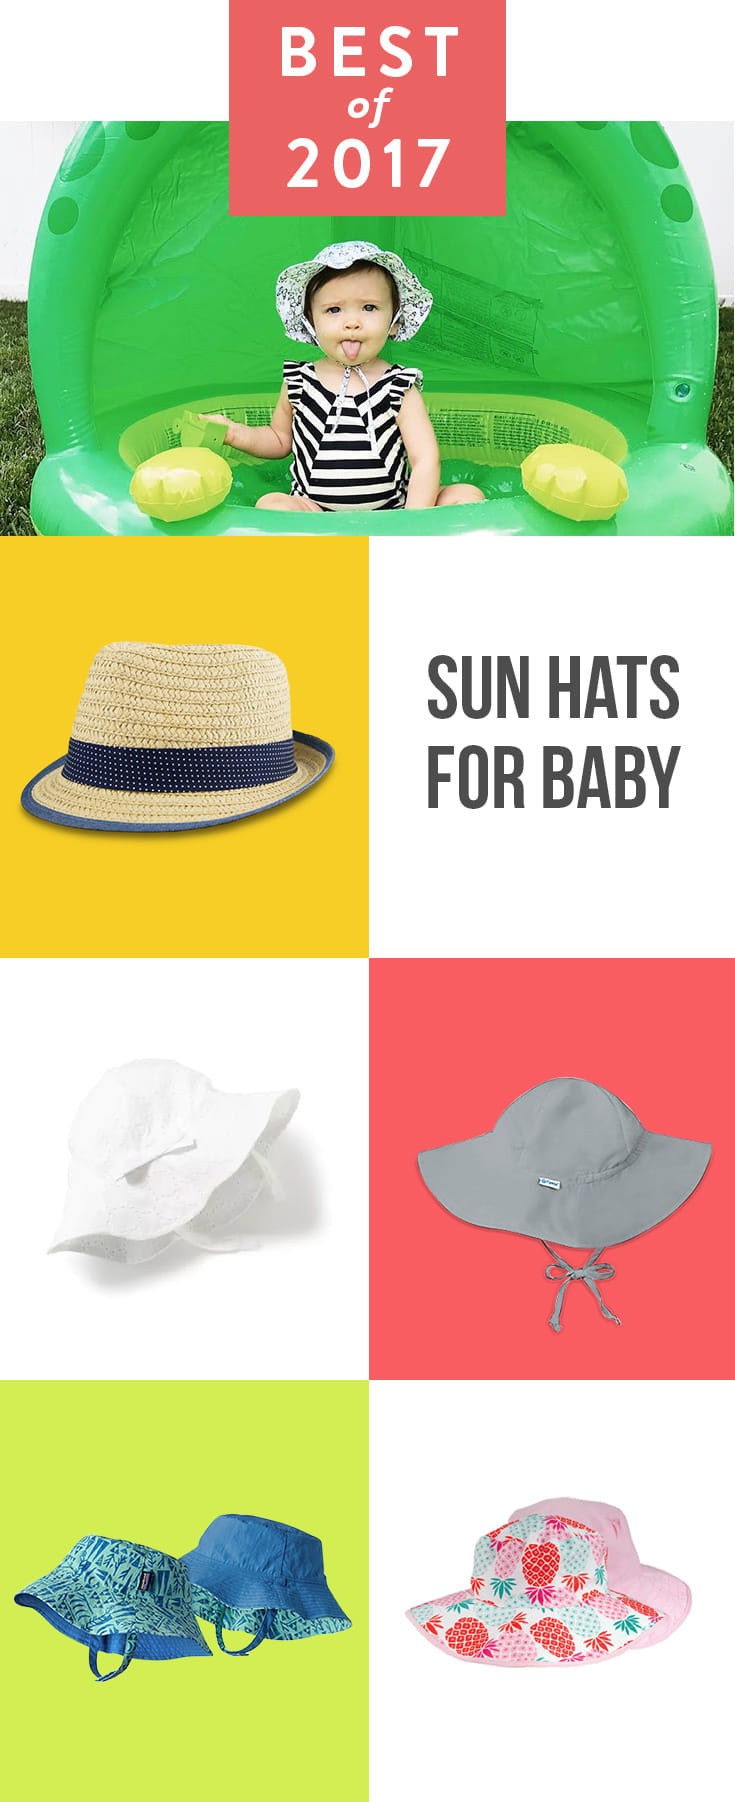 There is nothing sweeter than a baby with a sun hat. And while we love how cute they look, sun hats also do the serious job of helping to protect your wee one from the sun's burning rays.